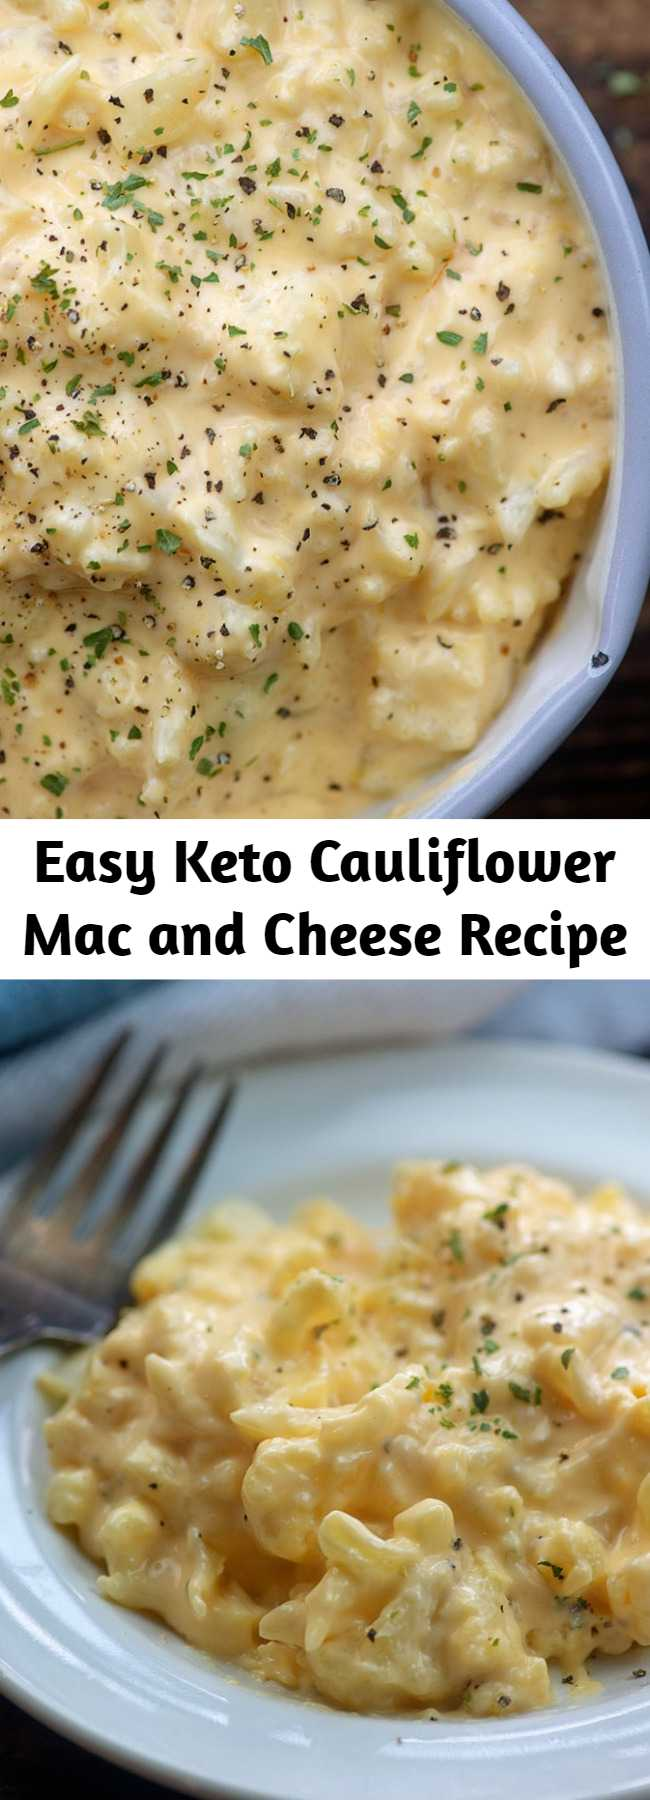 Easy Keto Cauliflower Mac and Cheese Recipe - Cauliflower mac and cheese is extra cheesy and melty! This tastes so much like the real deal that I bet you won't even miss the carbs. This one is both kid friendly and keto friendly! #keto #lowcarb #cauliflower #recipe